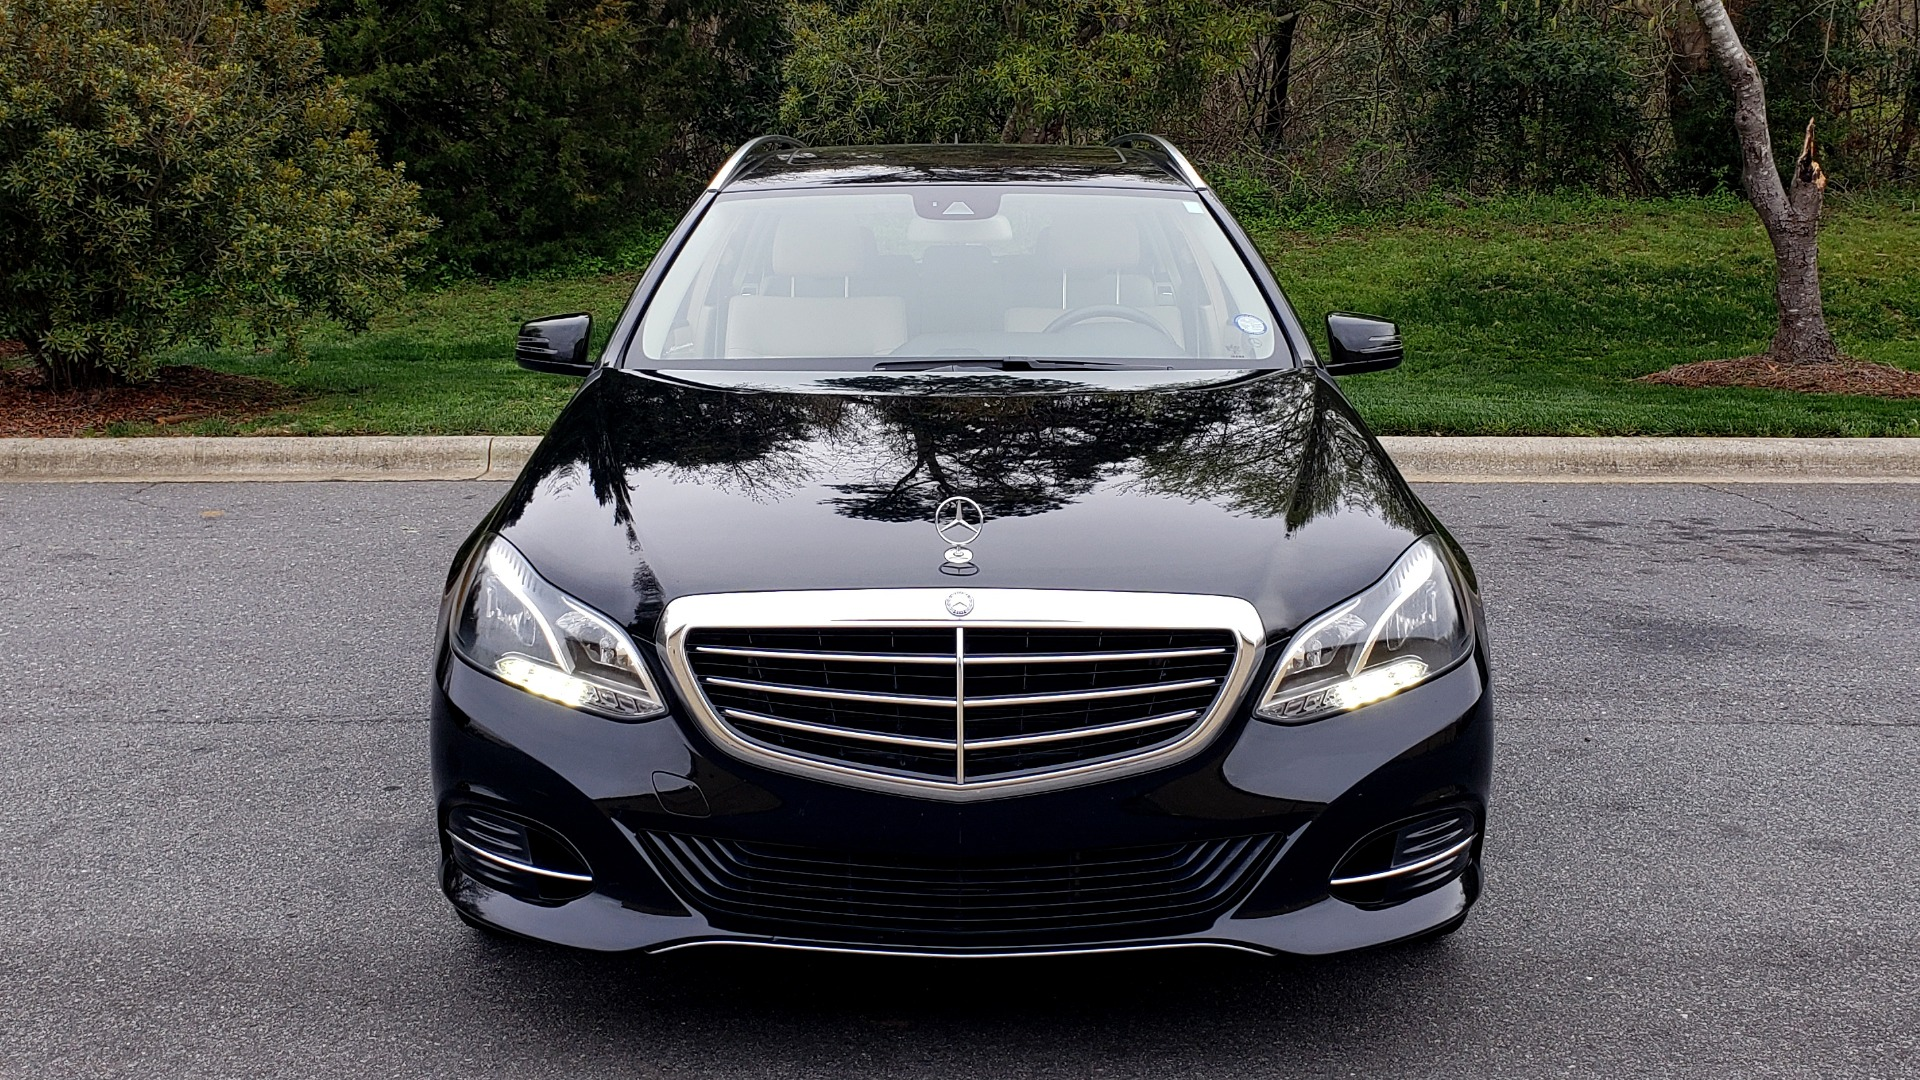 Used 2014 Mercedes-Benz E-Class E 350 4MATIC PREMIUM / NAV / SUNROOF / REARVIEW / 3-ROW for sale Sold at Formula Imports in Charlotte NC 28227 23